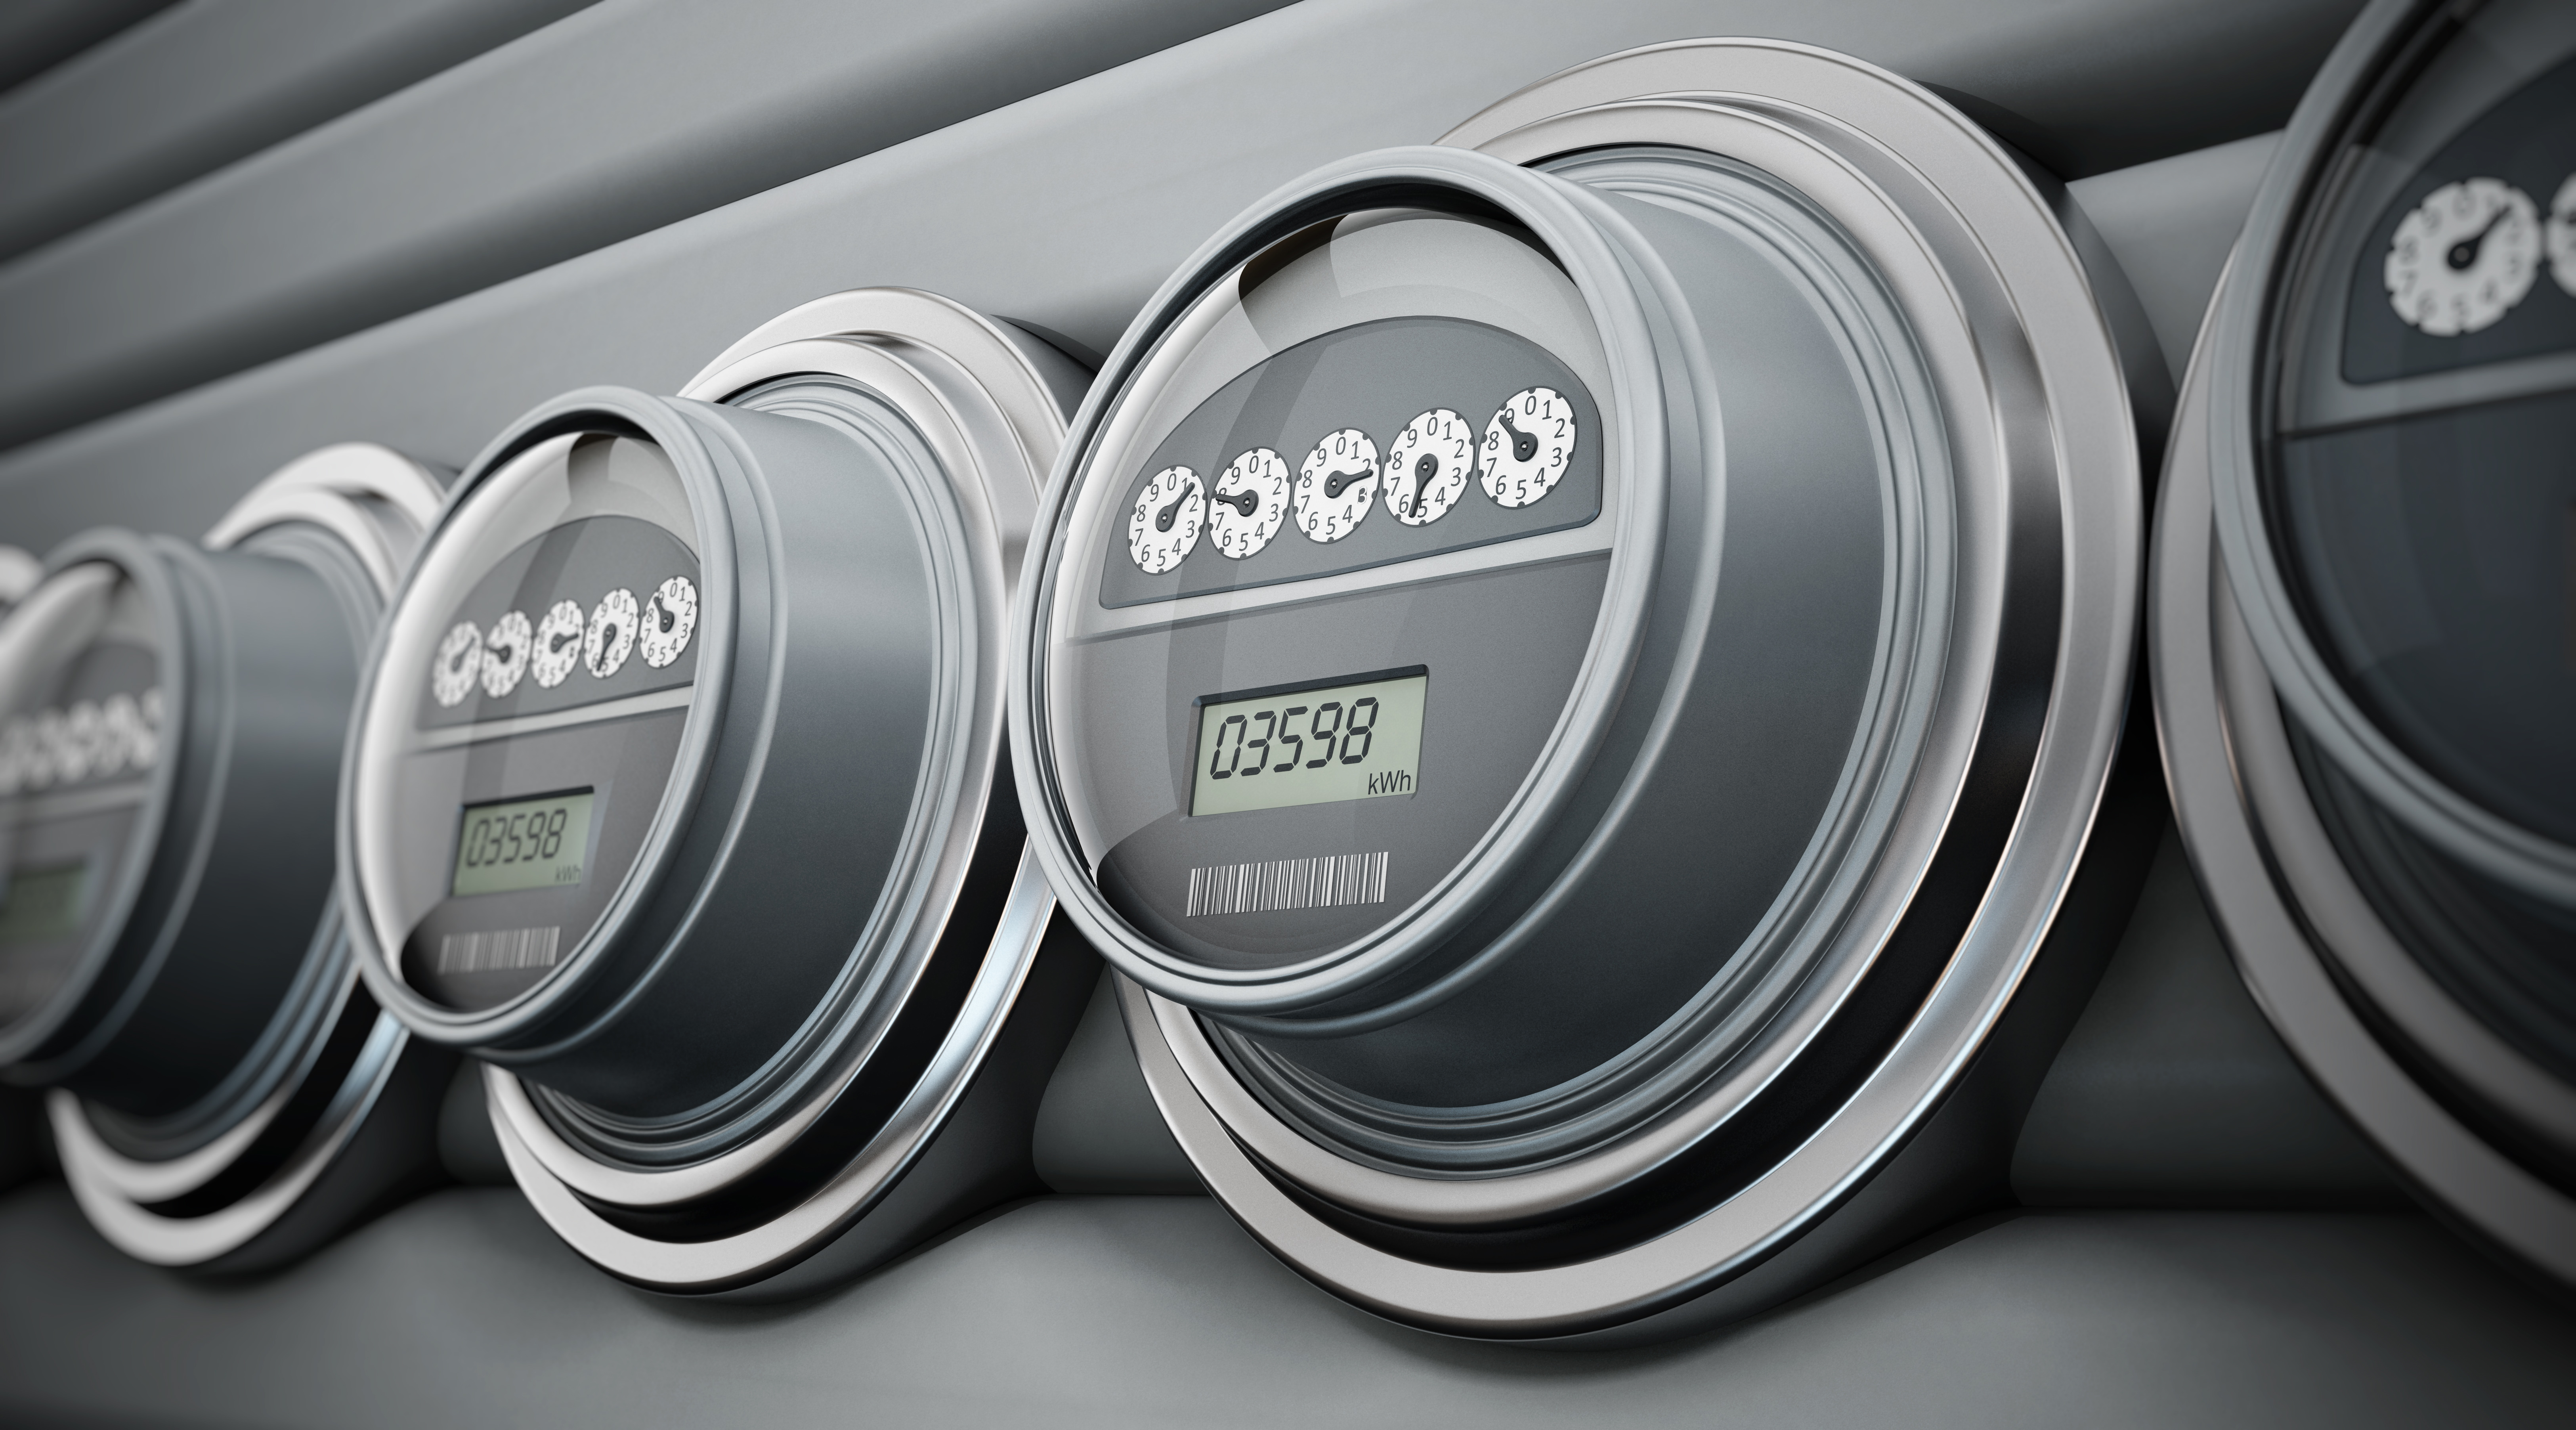 Photo of electric meters in a row